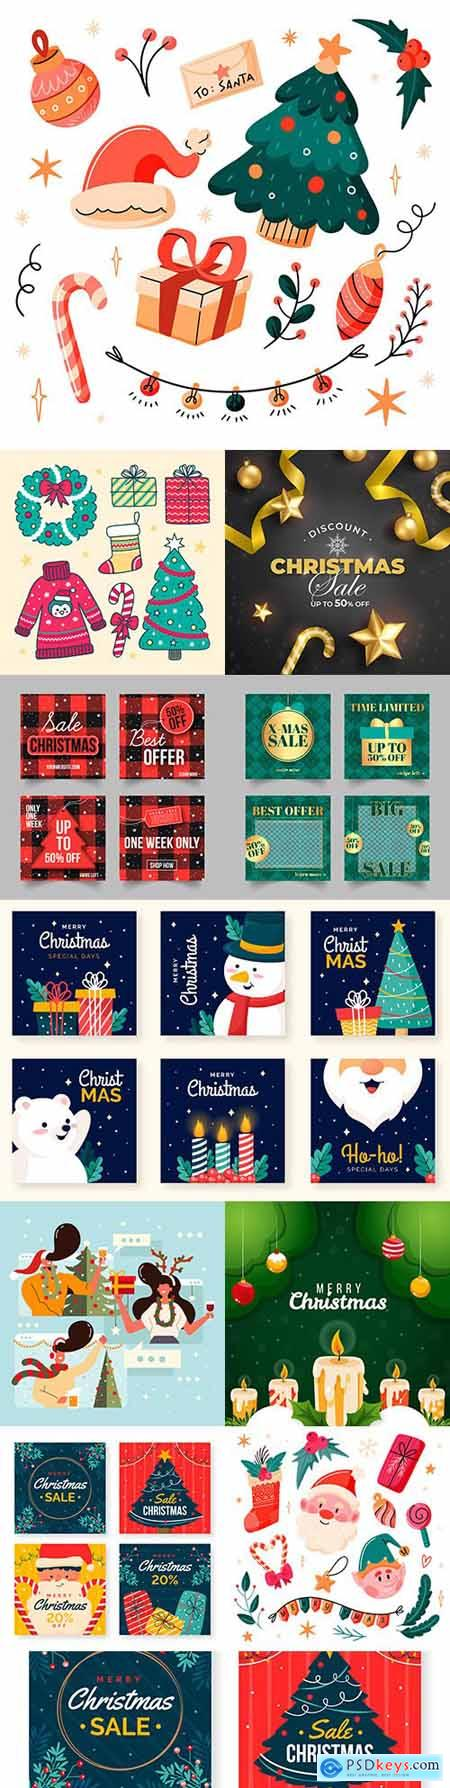 Christmas sale on instagram and painted theme elements